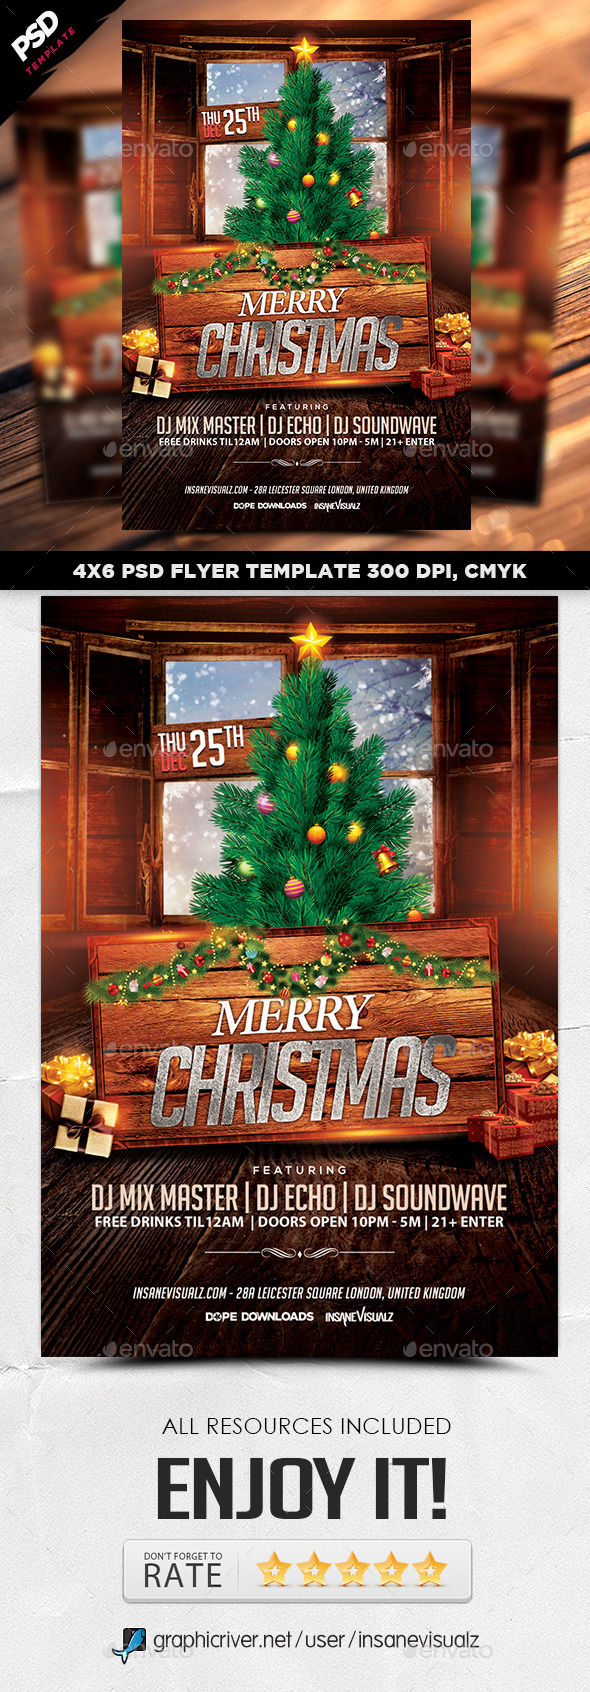 GraphicRiver Merry Christmas Flyer Template 9717678